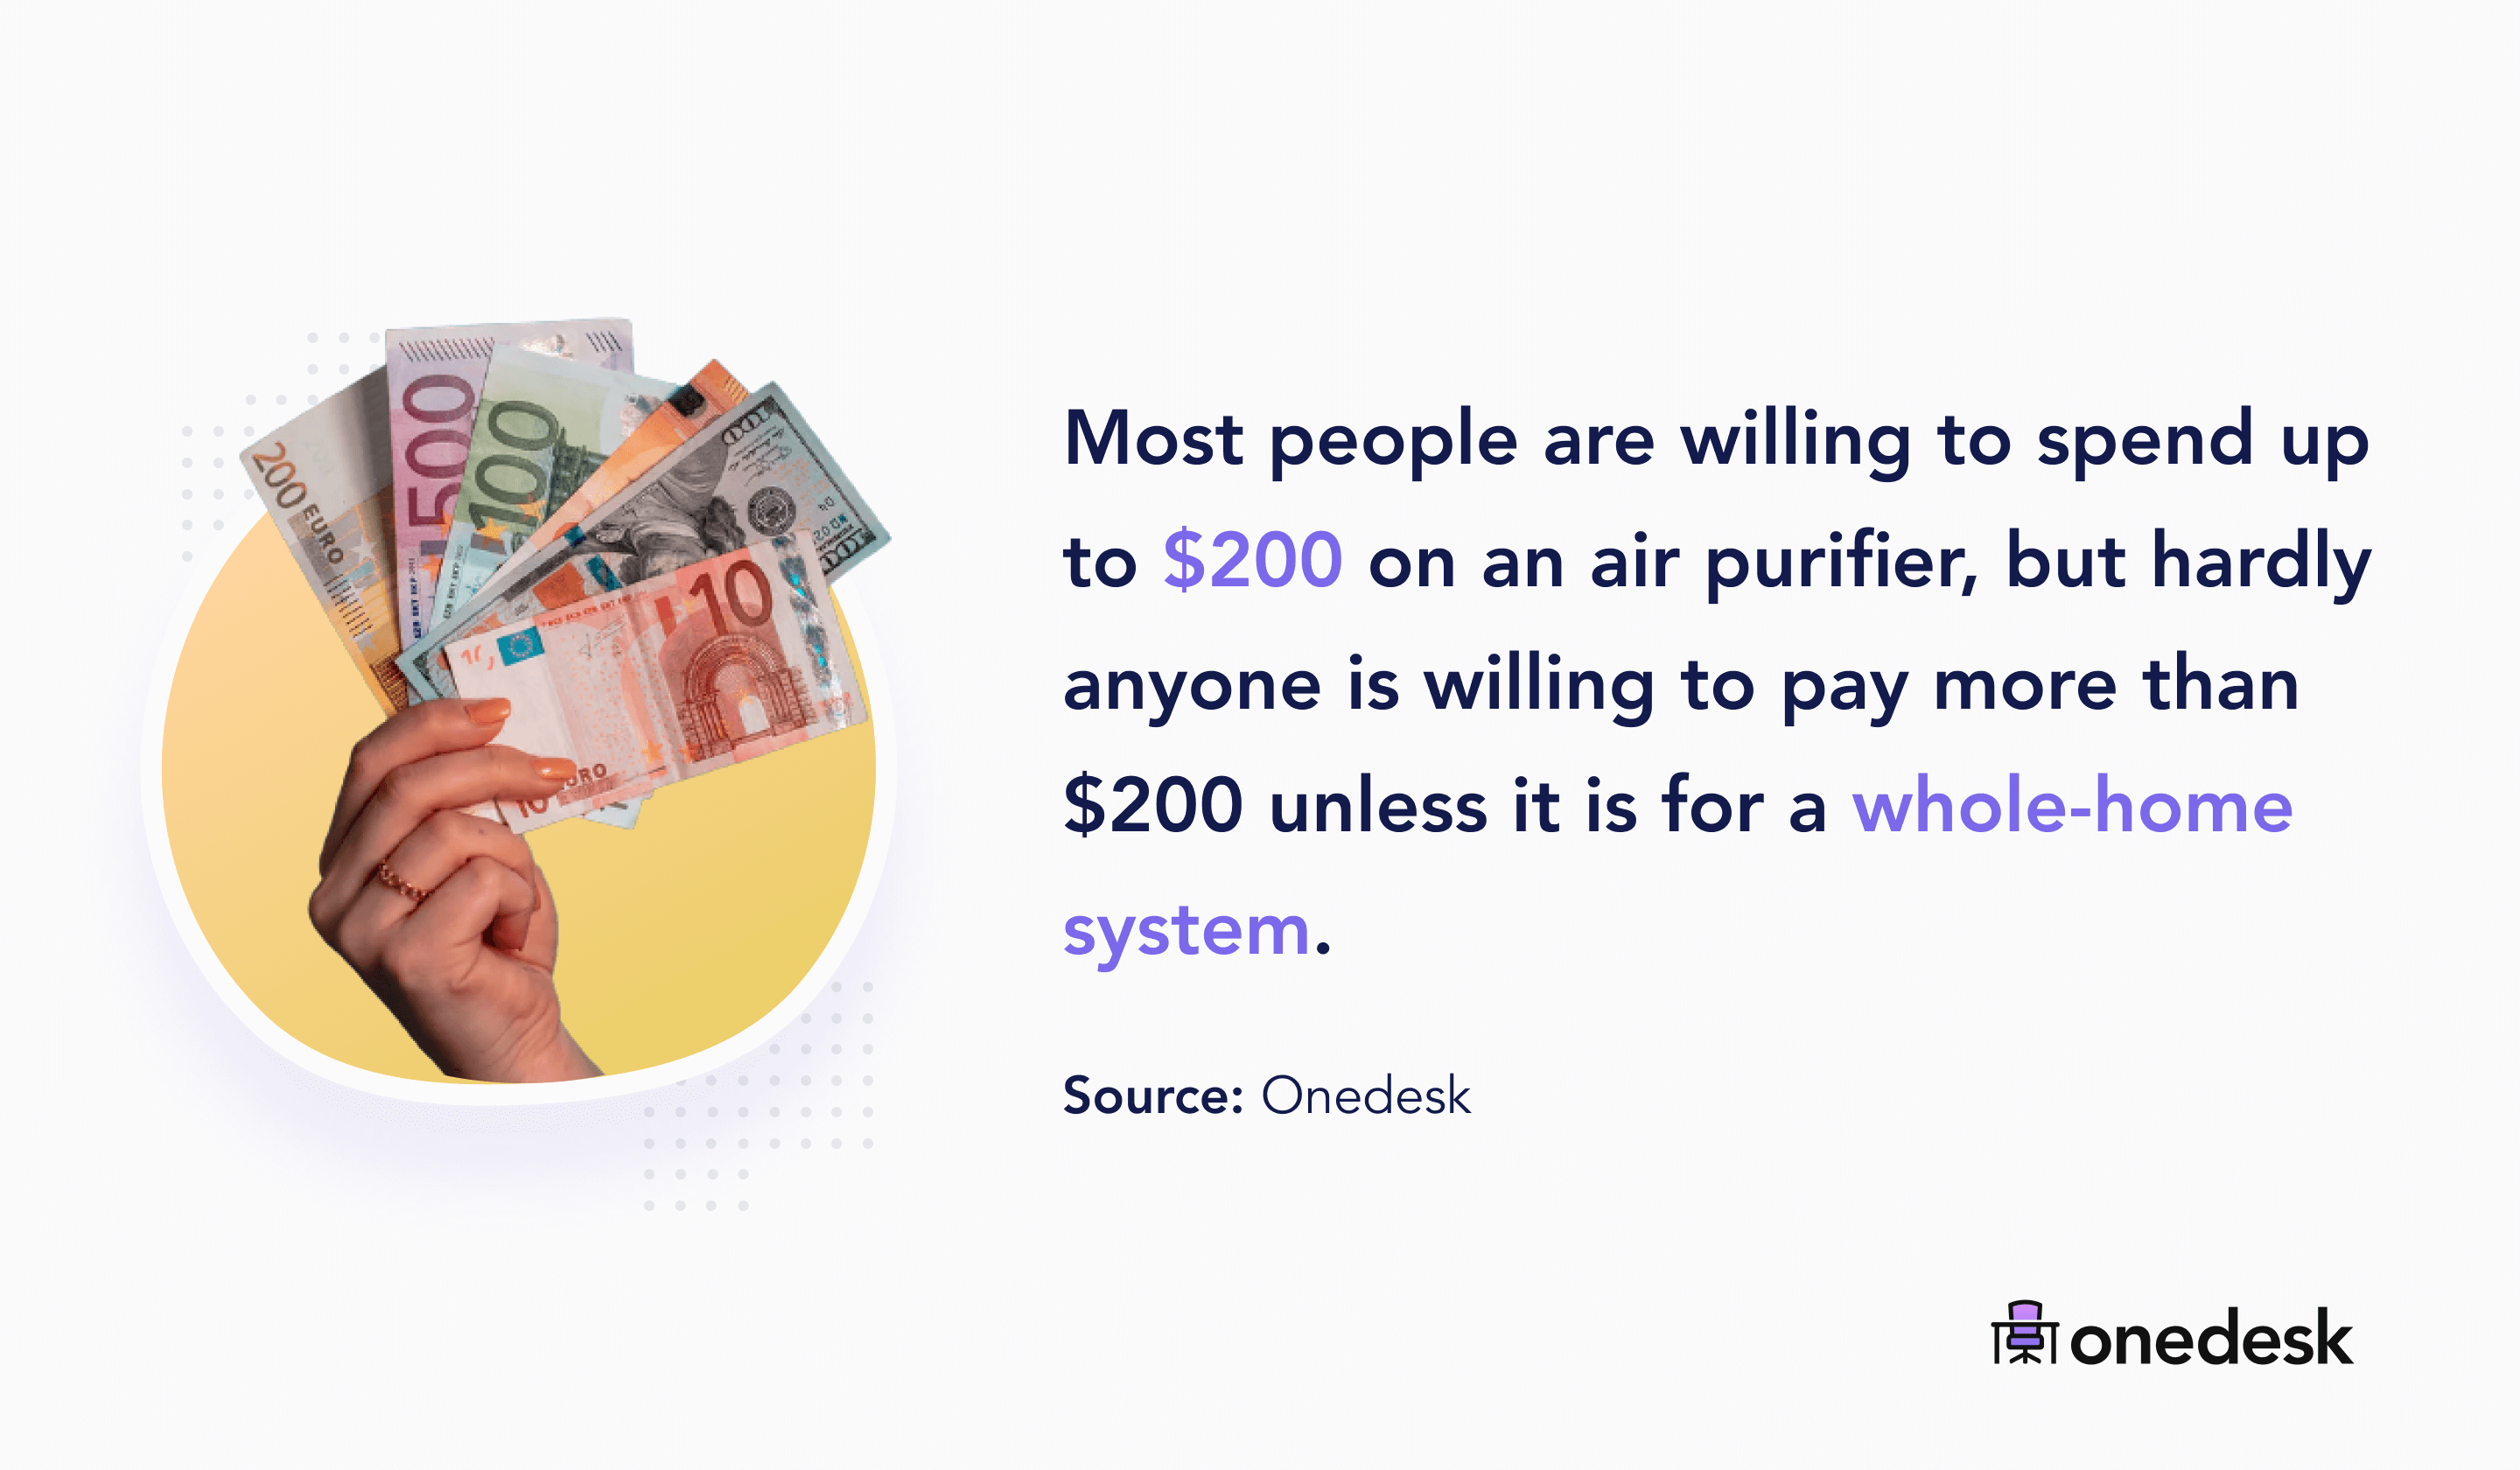 people spend up to $200 on an air purifier